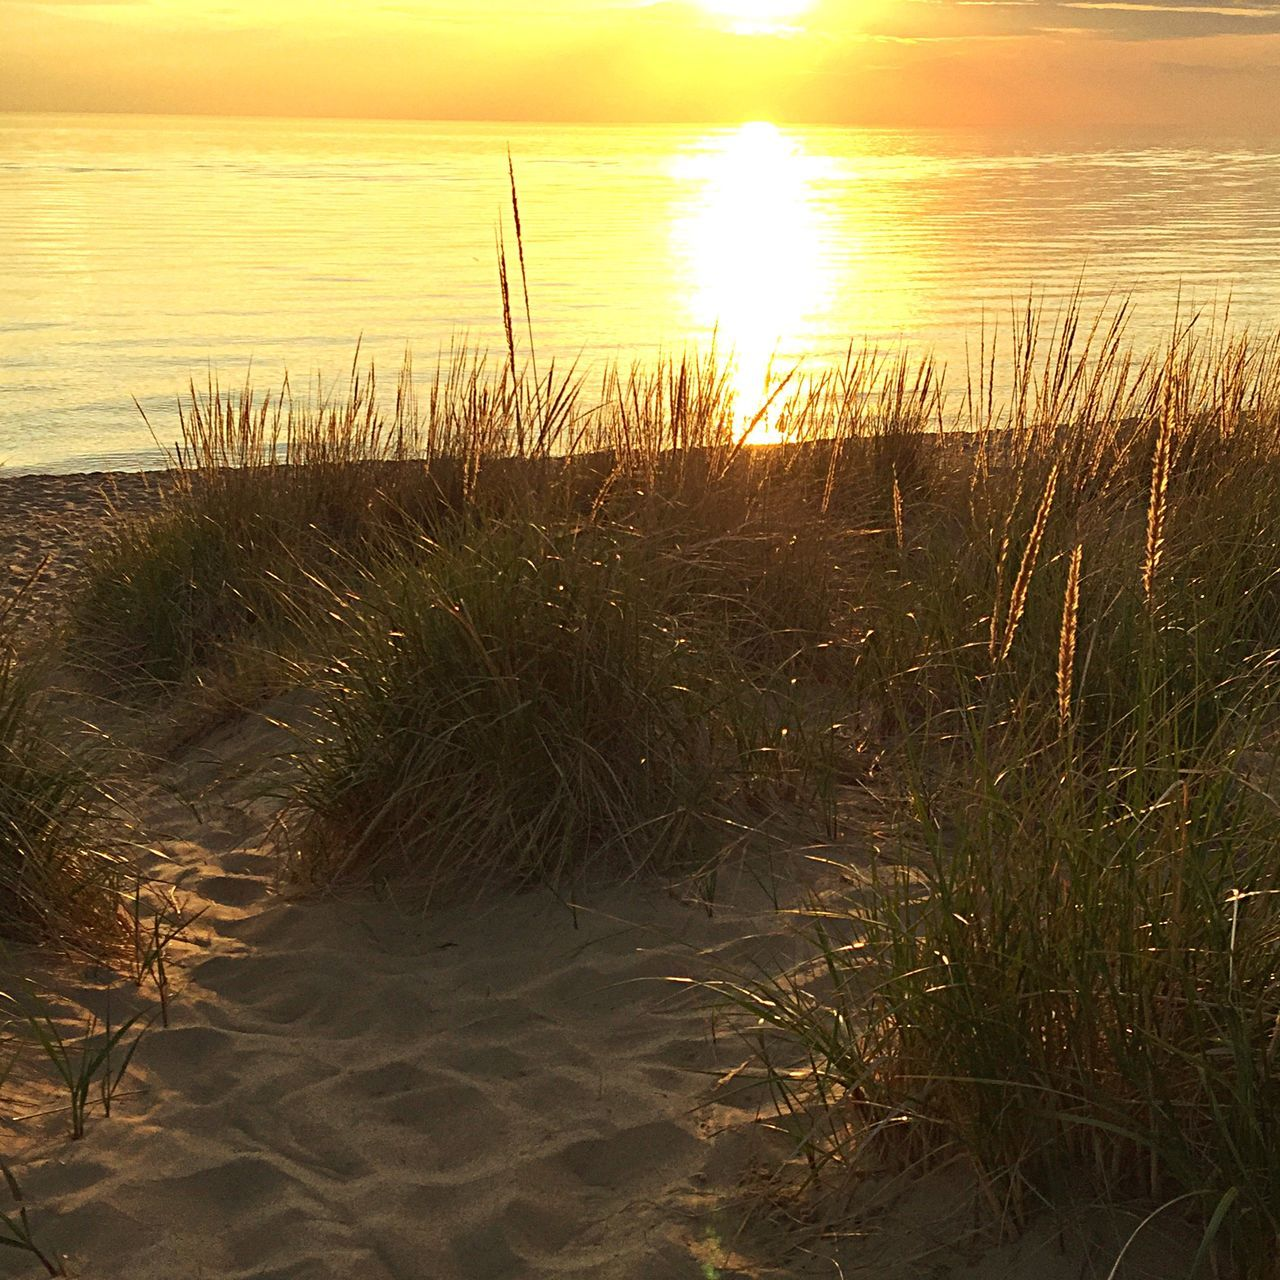 nature, beach, sea, water, sunset, tranquil scene, grass, sand, marram grass, tranquility, sunlight, scenics, beauty in nature, horizon over water, sun, outdoors, no people, growth, sky, sand dune, day